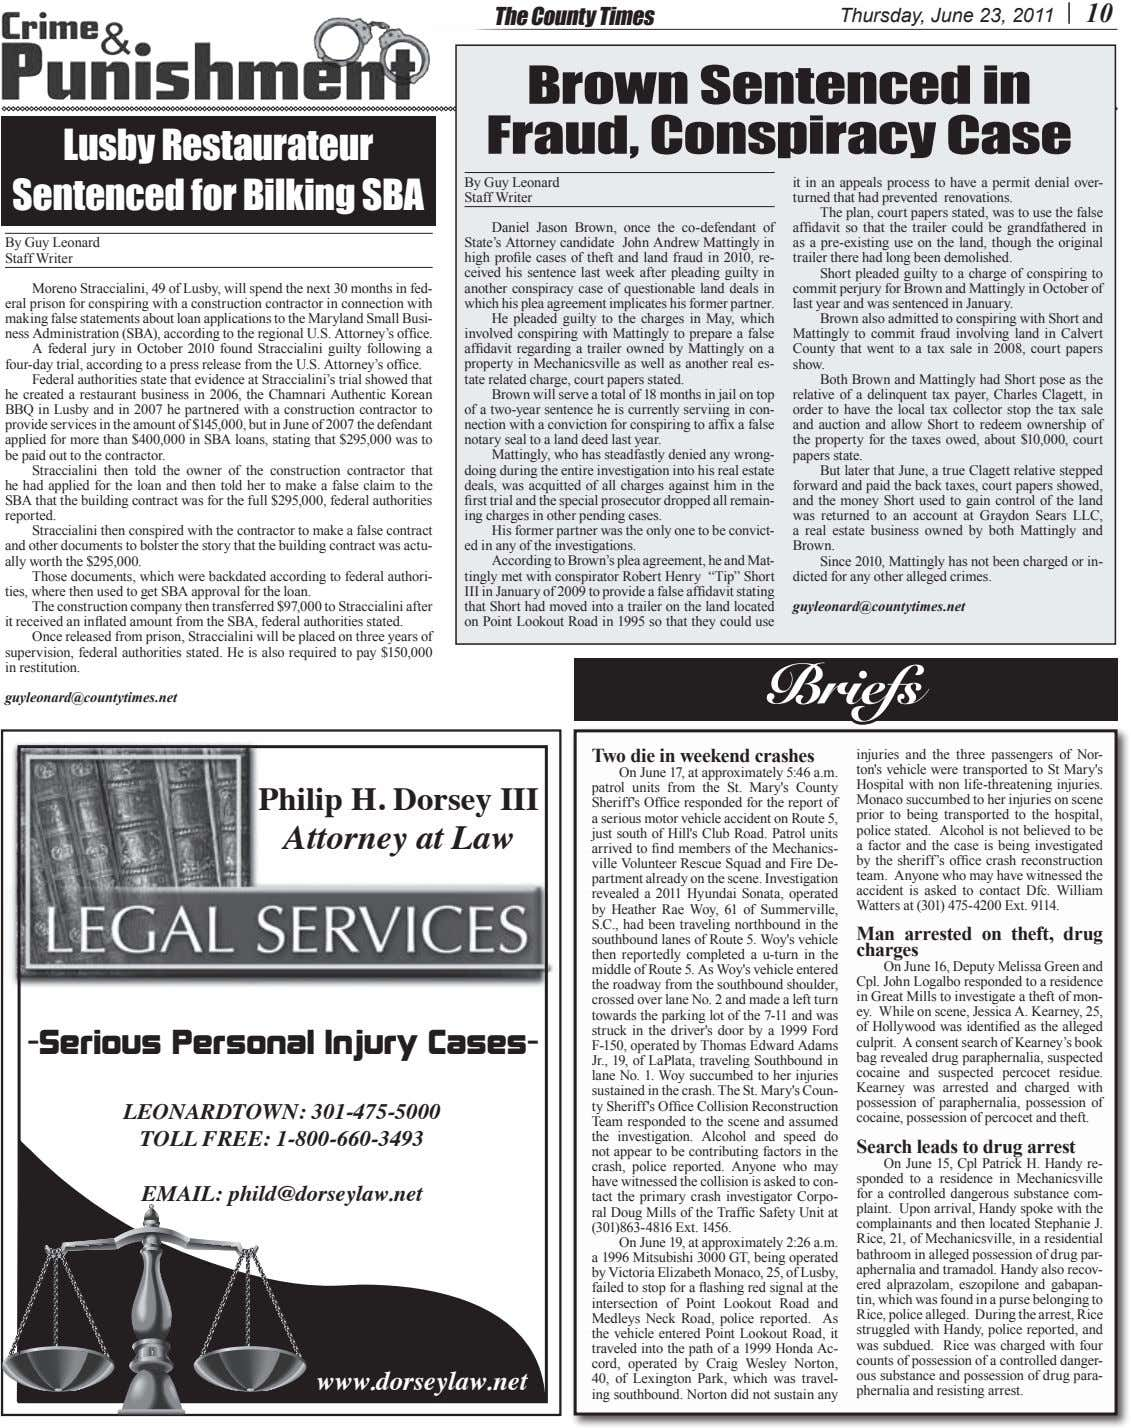 The County Times Thursday, June 23, 2011 10 Brown Sentenced in Fraud, Conspiracy Case Lusby